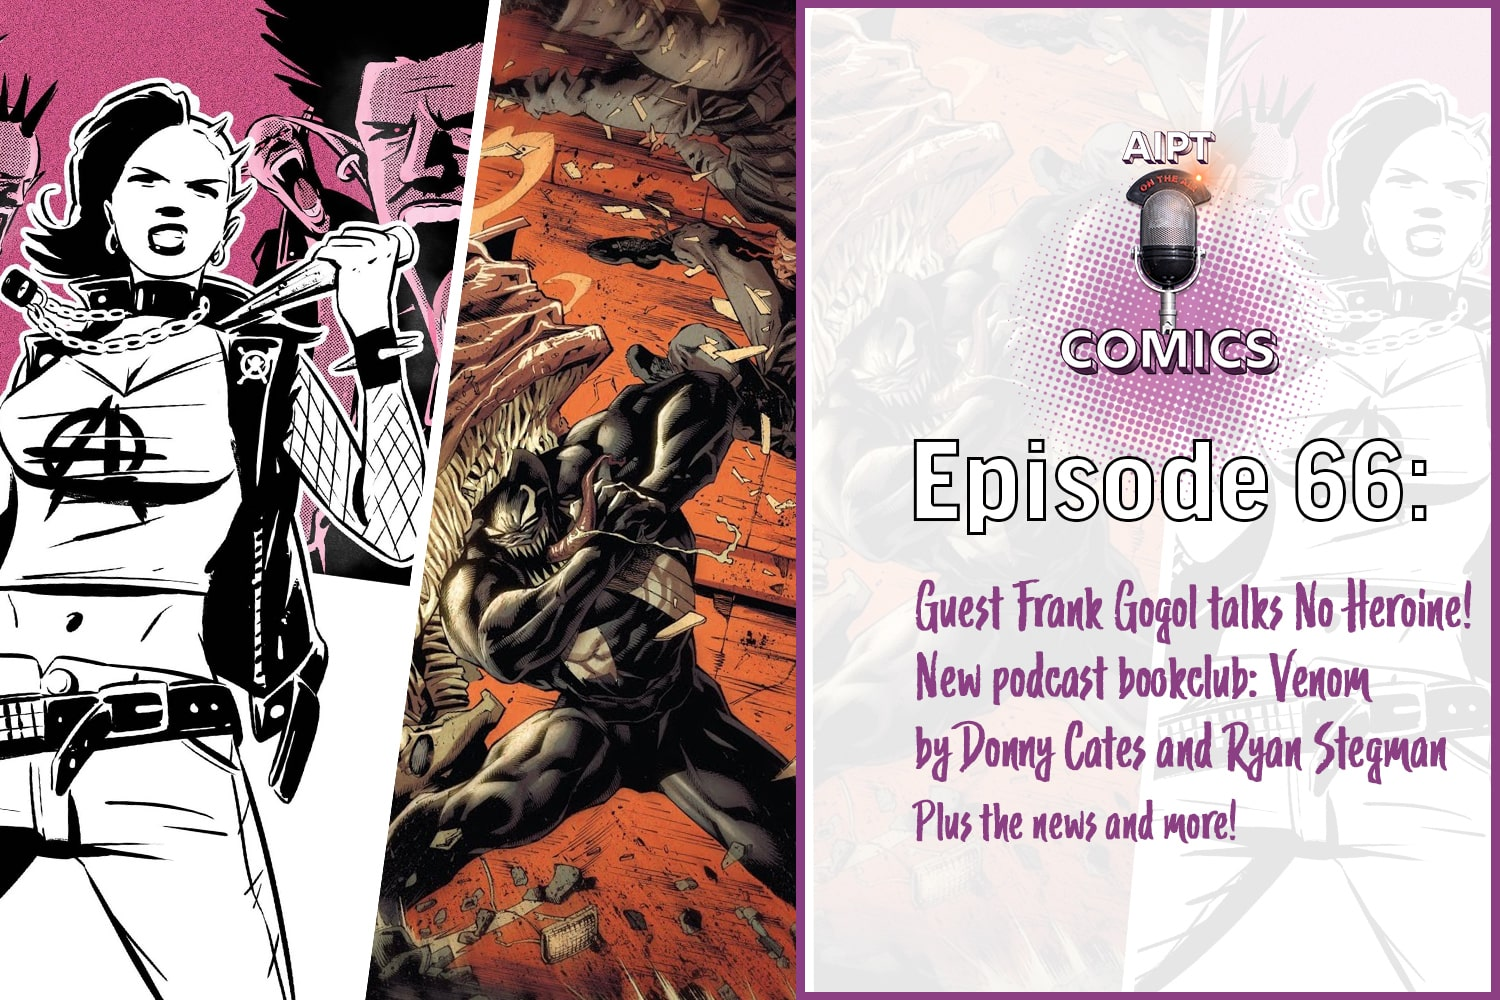 Forrest and Dave are joined by guest comic book writer Frank Gogol who has new series No Heroine coming out this June. We also discuss the industry, some tips at breaking in, and more. We also begin our very first book club as we wait for comic books to get back to regularly scheduled release. In our very first, we break down Ryan Stegman and Donny Cates' Venom run discussing the story so far, what works, what doesn't, favorite moments, and where we think it's going.